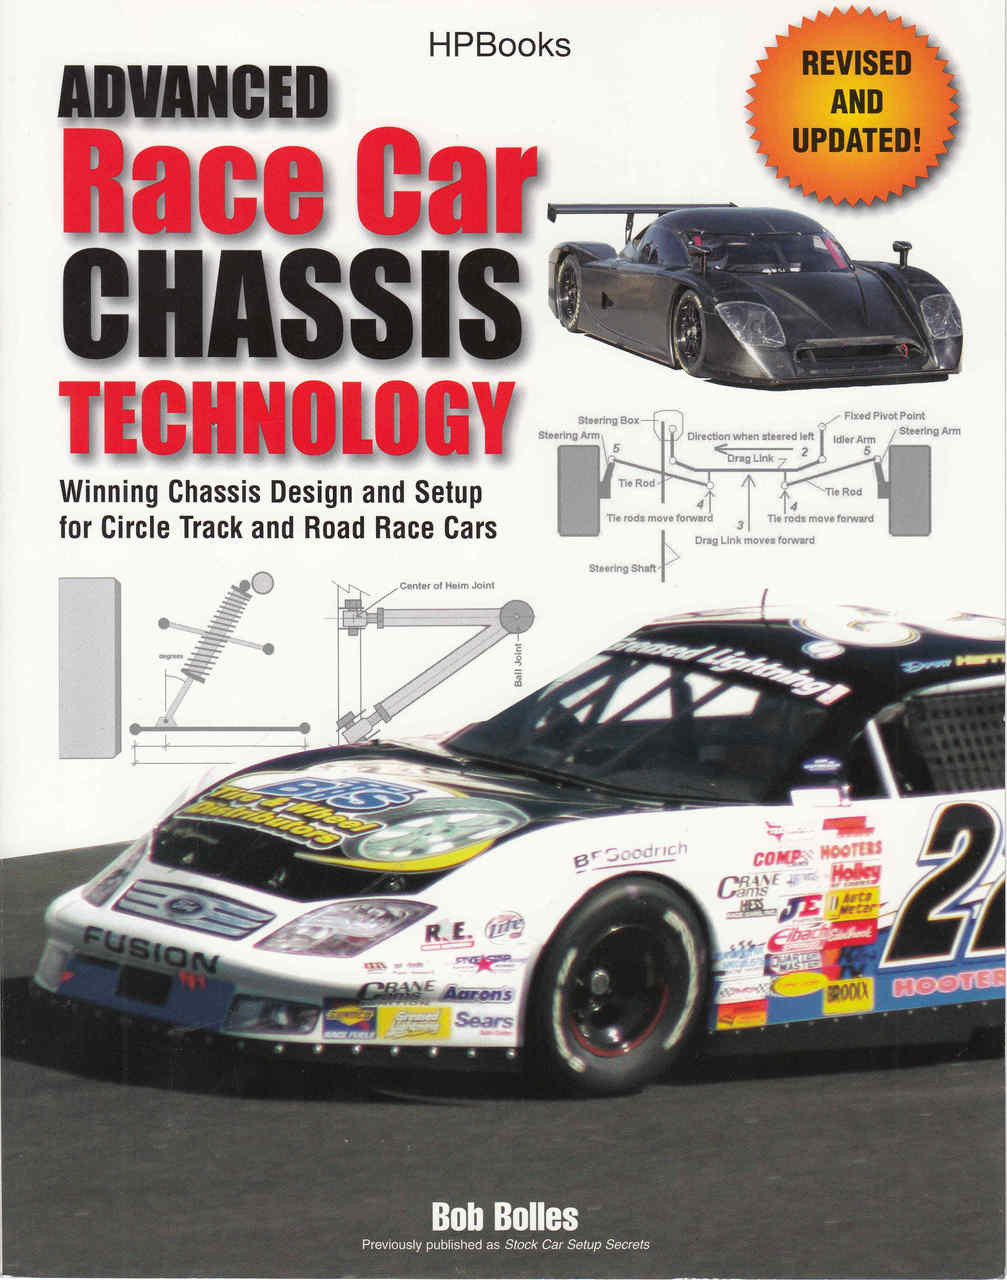 Advanced Race Car Chassis Technology - Revised and Updated Edition